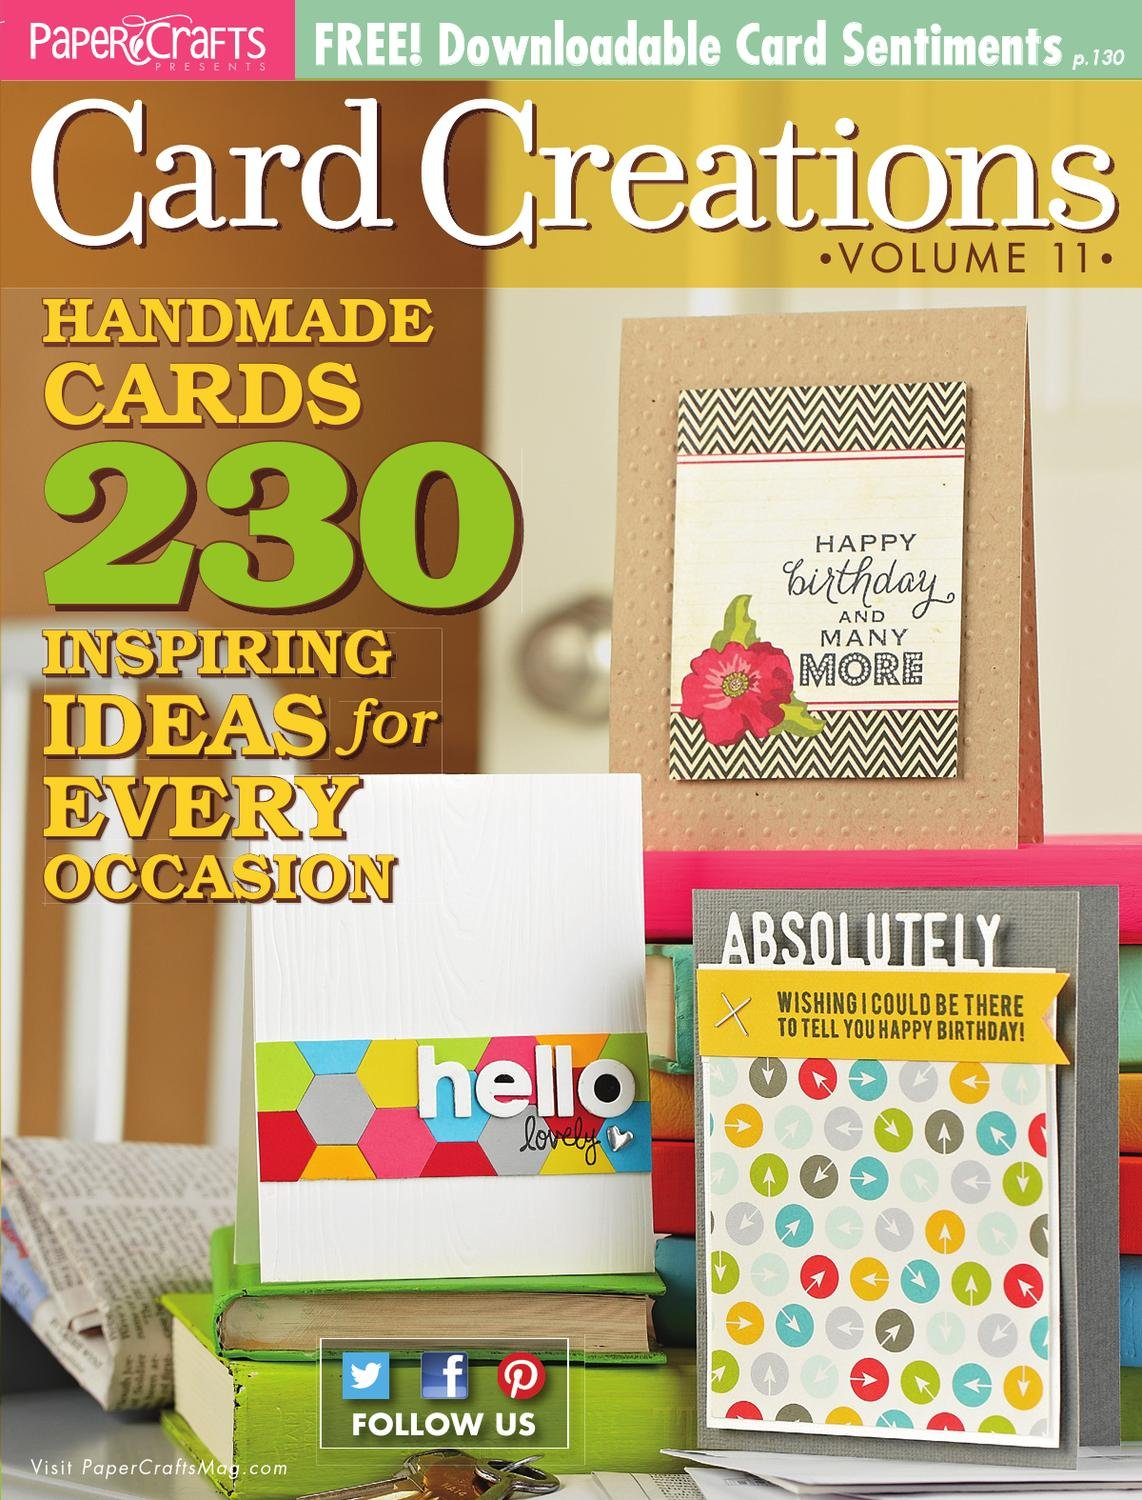 Card Creations Volume 11